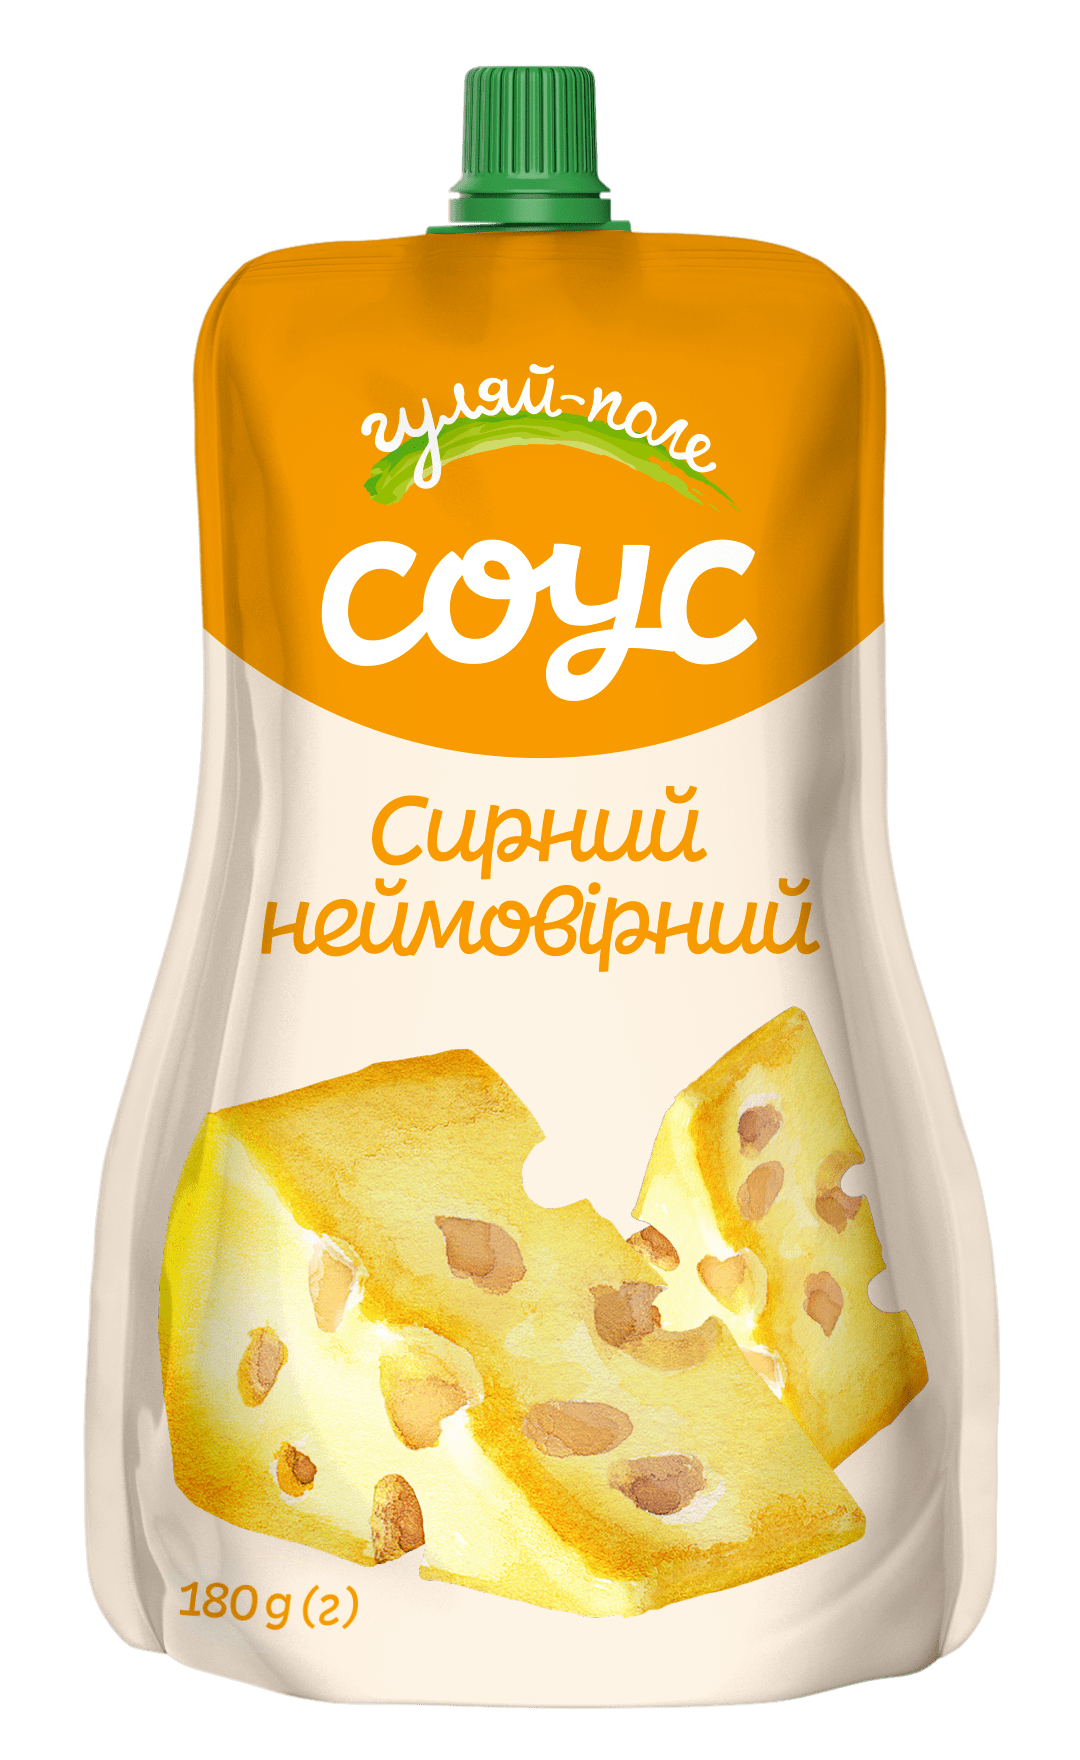 Sauce   Гуляй-поле Cheese sauce  Doy-pack 180 g